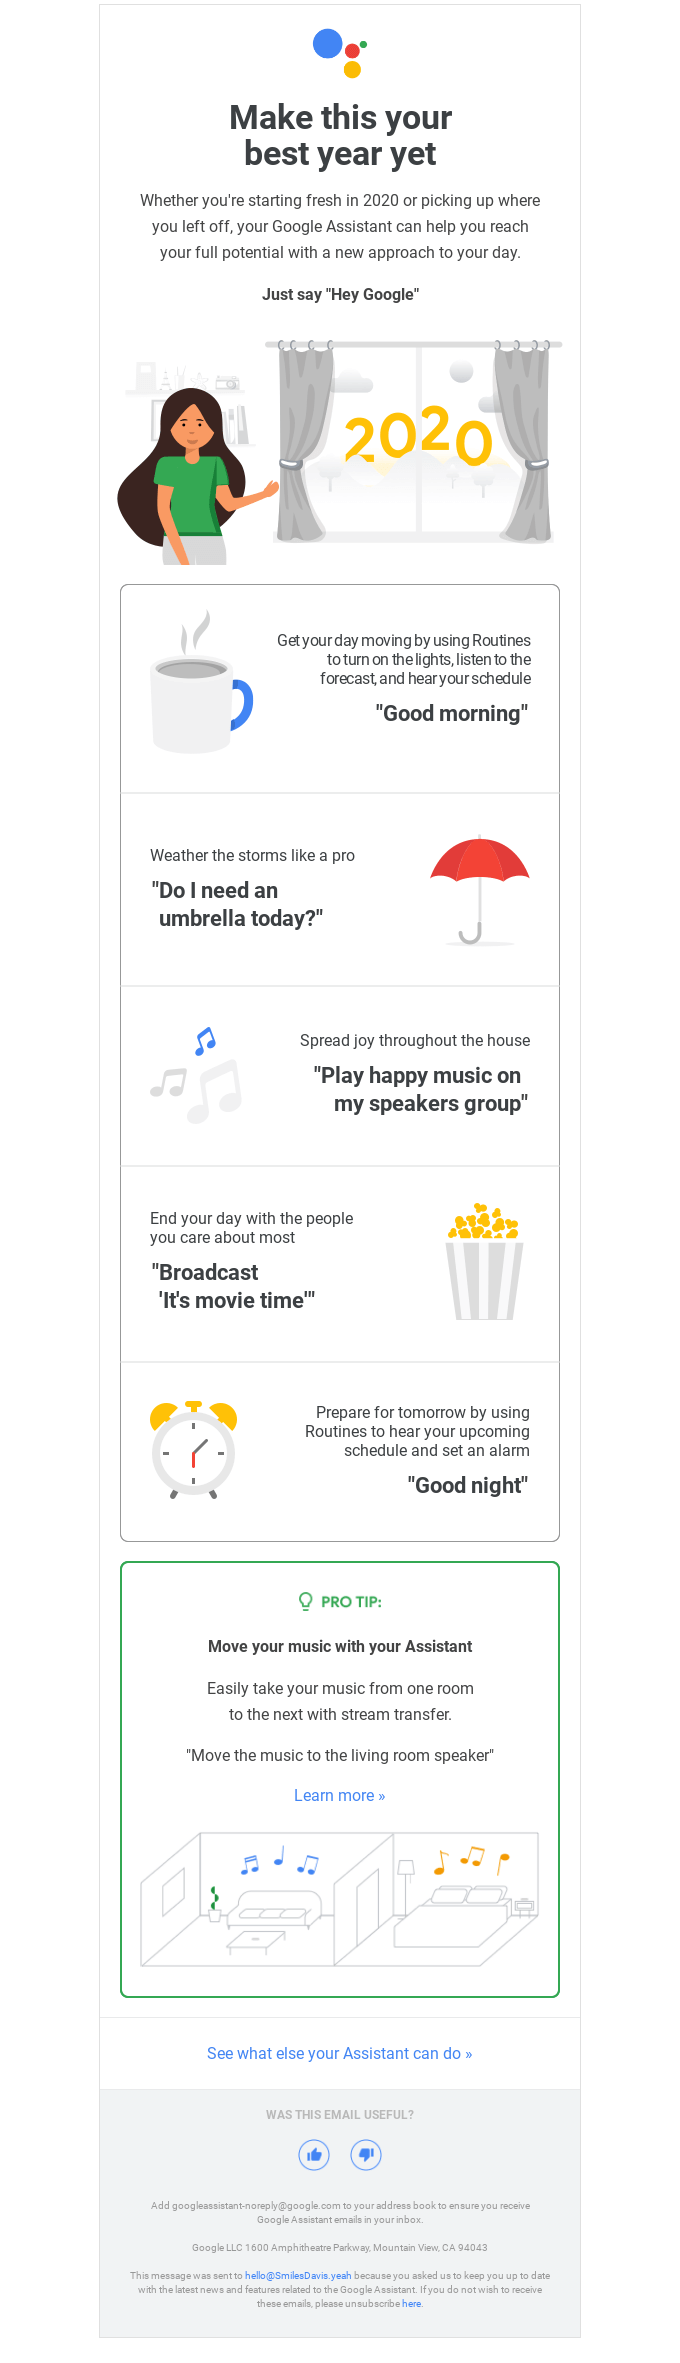 A New Year's email from Google.